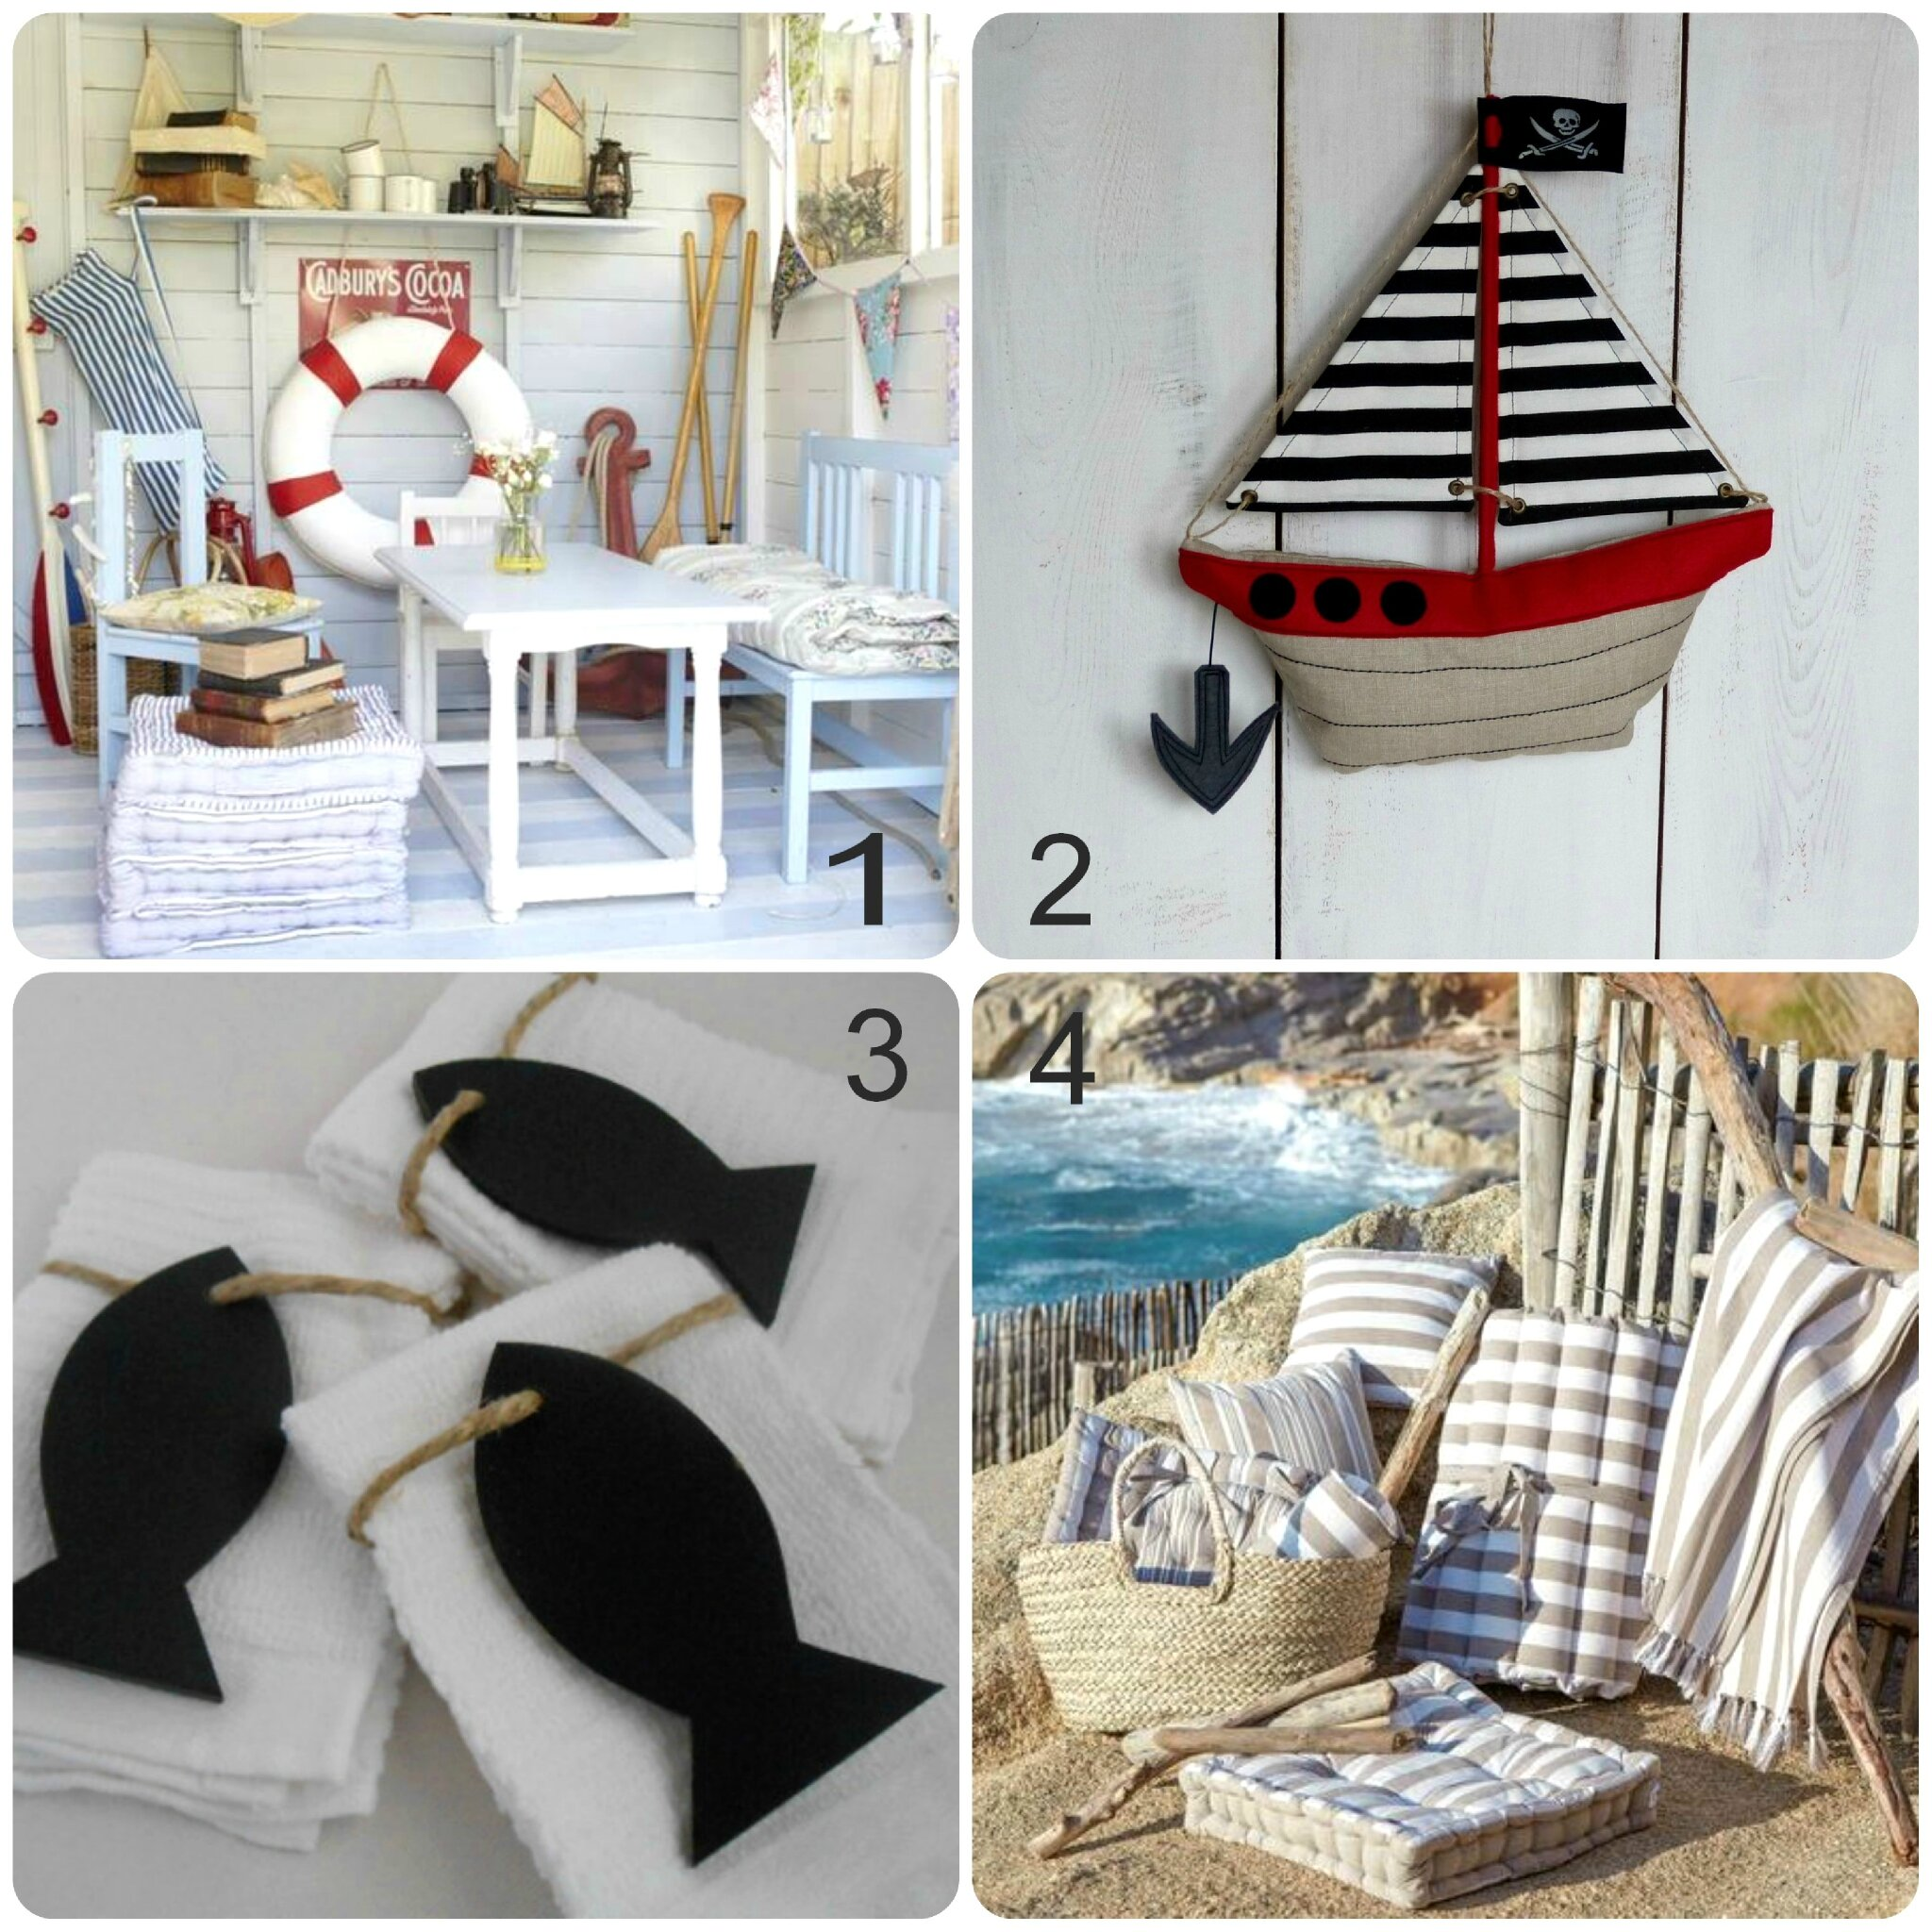 130 objet deco bord de mer livre d co bord de mer marie. Black Bedroom Furniture Sets. Home Design Ideas